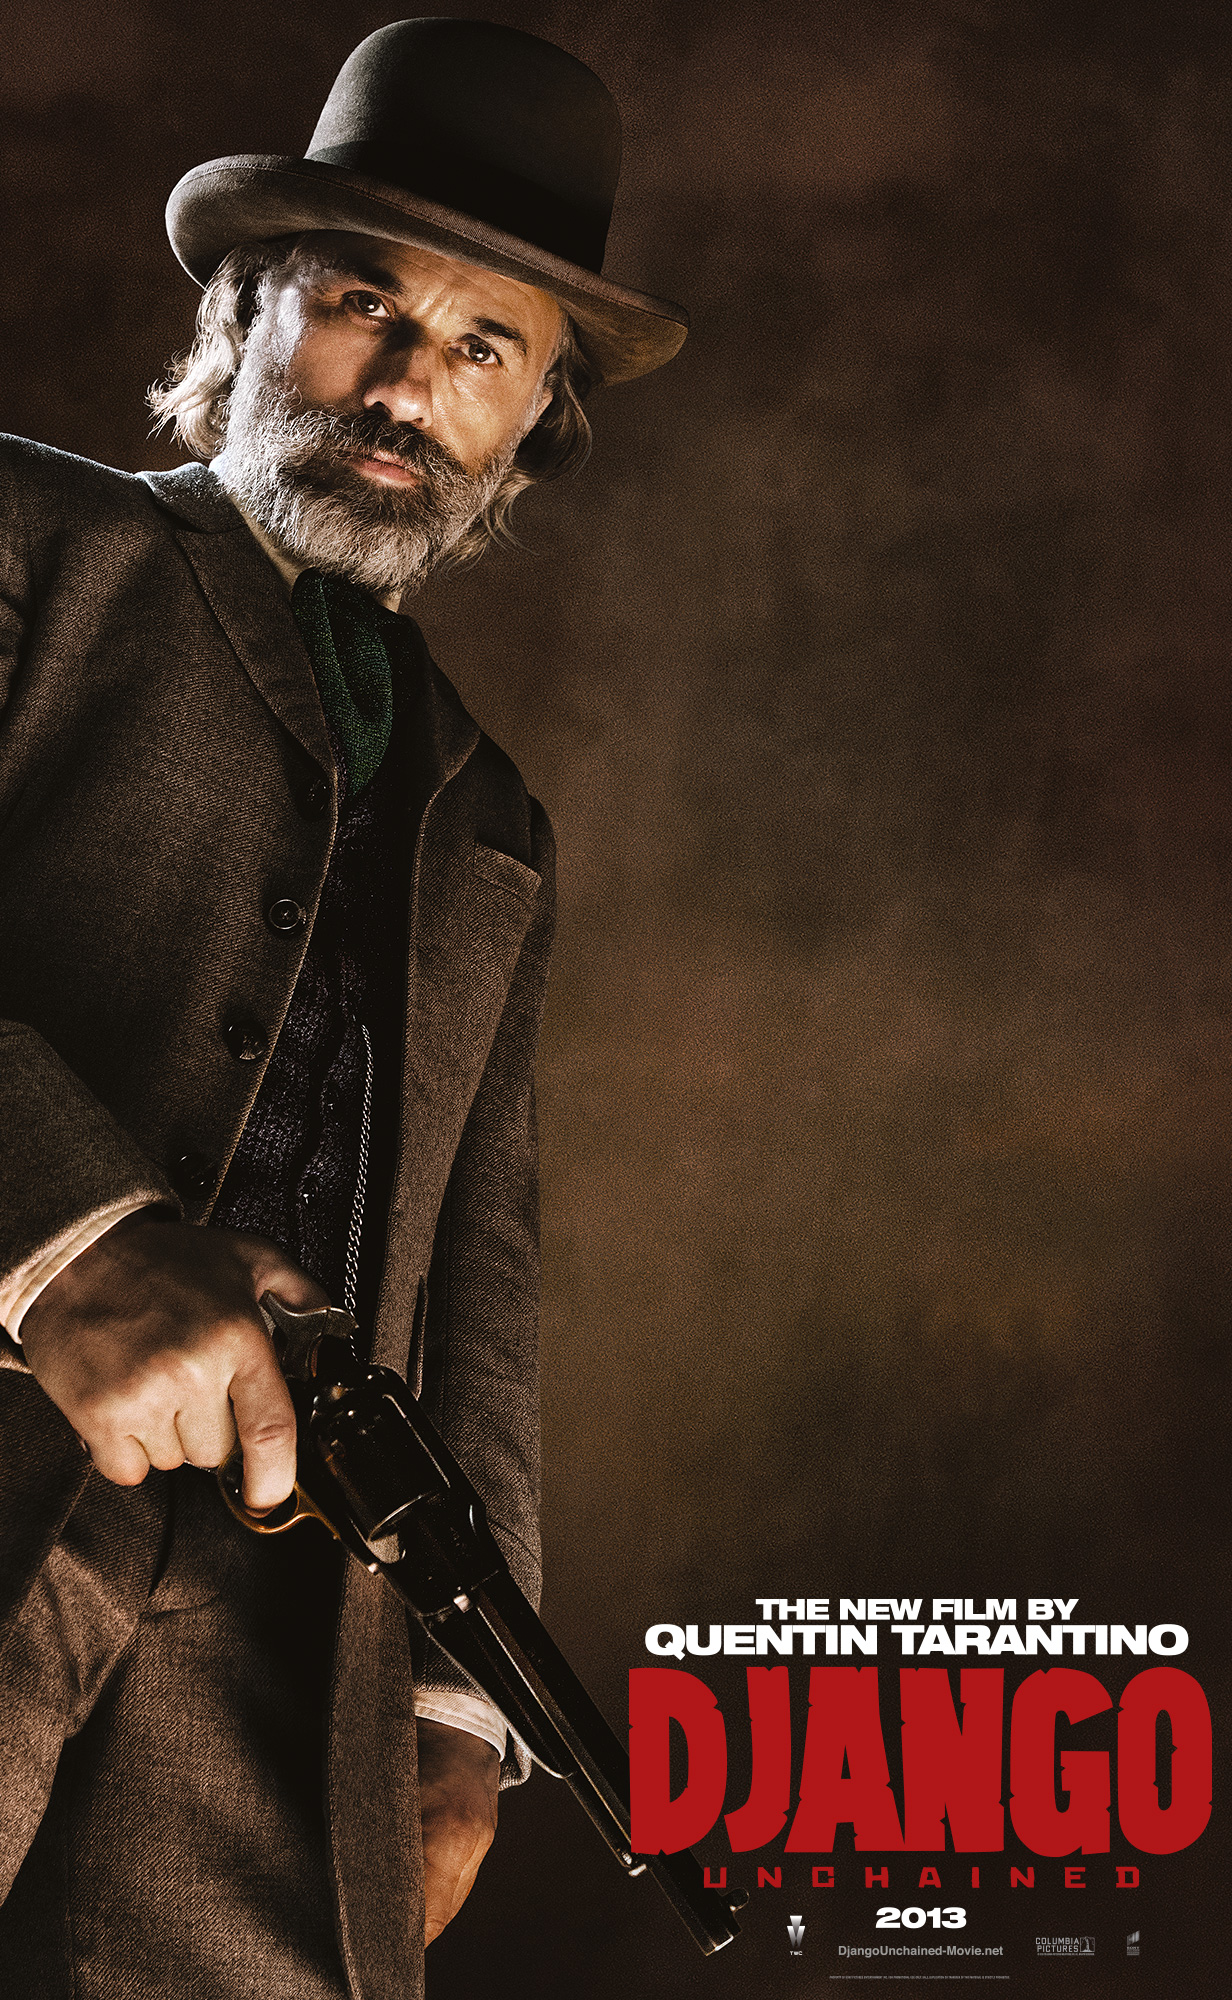 django unchained Django unchained tells the story of django (jamie foxx), a slave who is soon picked up by bounty hunter dr king shultz (christoph waltz) the story follows on as shultz takes on django as his deputy during their tasks of bounty hunting.